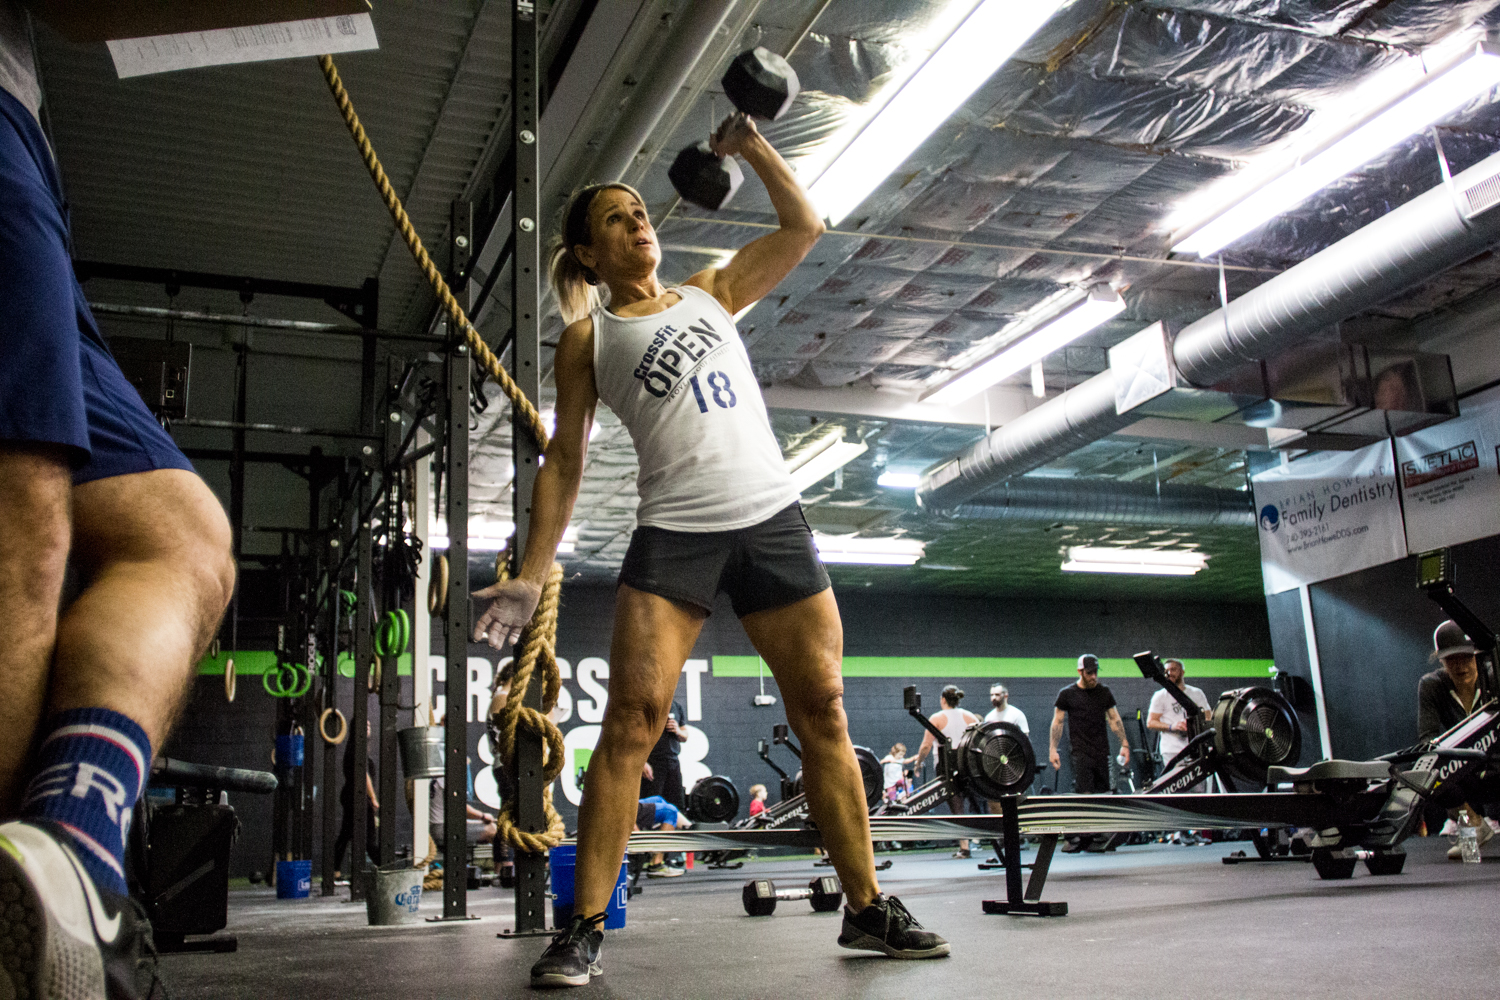 Patty Workman - arguably one of the most improved members of CrossFit 1808 from year-to-year. Just 3.5 years ago, Patty could not do a pull up (jumping pull ups is what she resorted to). 2018 marked the first Open for Patty where she completed every workout RX! She finished 449th in the world in her age division (50-54) and 32nd in the Central East Region.